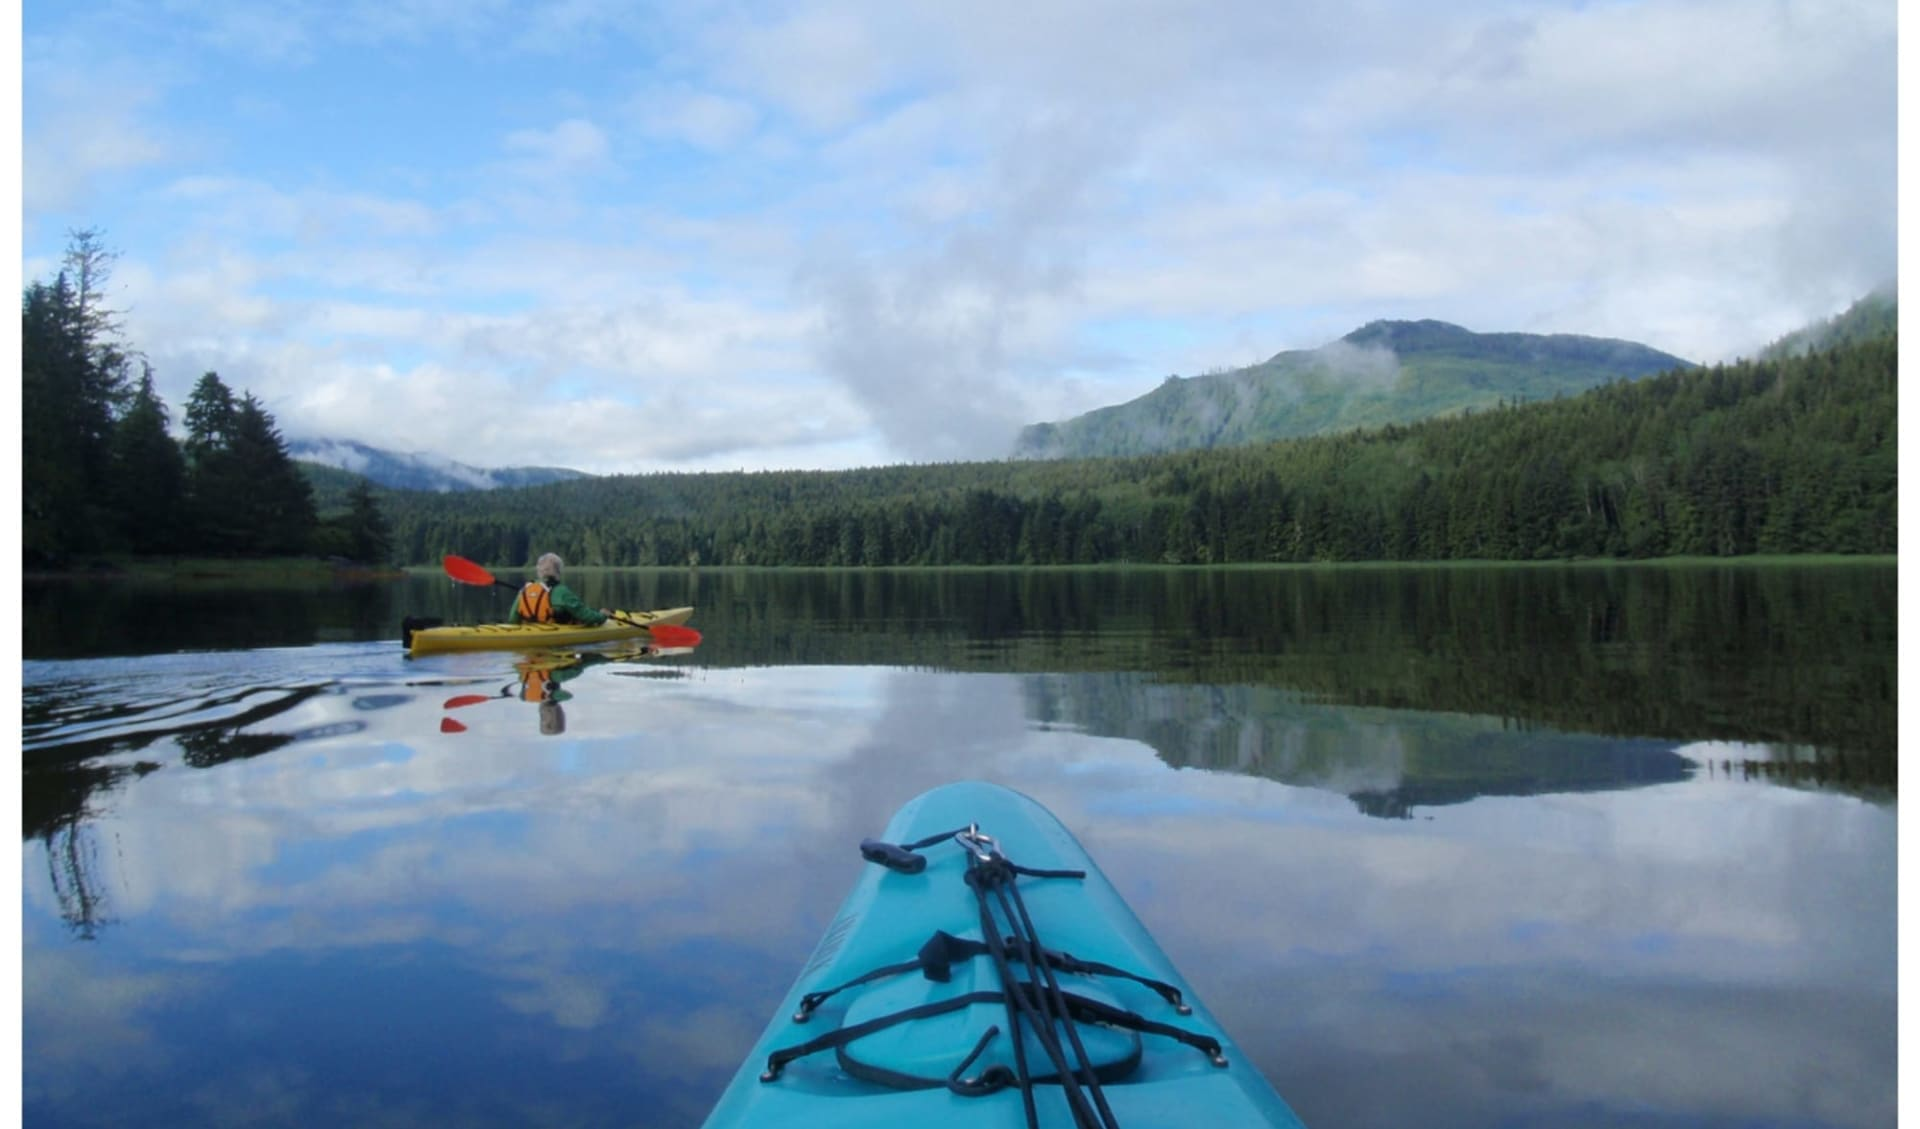 Bärenbeobachtung Knight Inlet Lodge 4 Tage ab Campbell River: activities: Knight Inlet Lodge - Kayaking